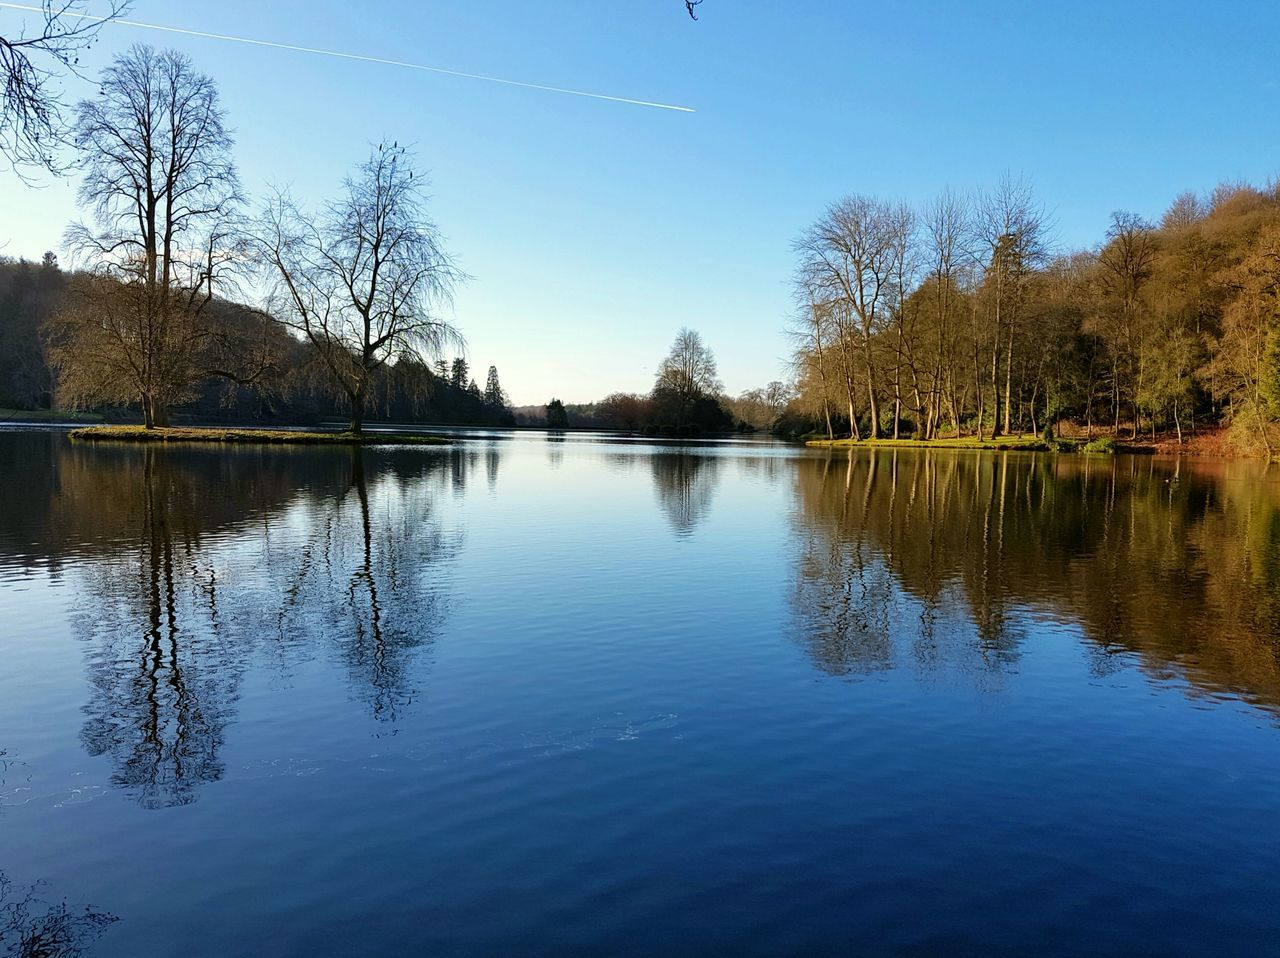 reflection, water, tree, lake, tranquil scene, beauty in nature, tranquility, nature, scenics, waterfront, outdoors, no people, sky, day, bare tree, clear sky